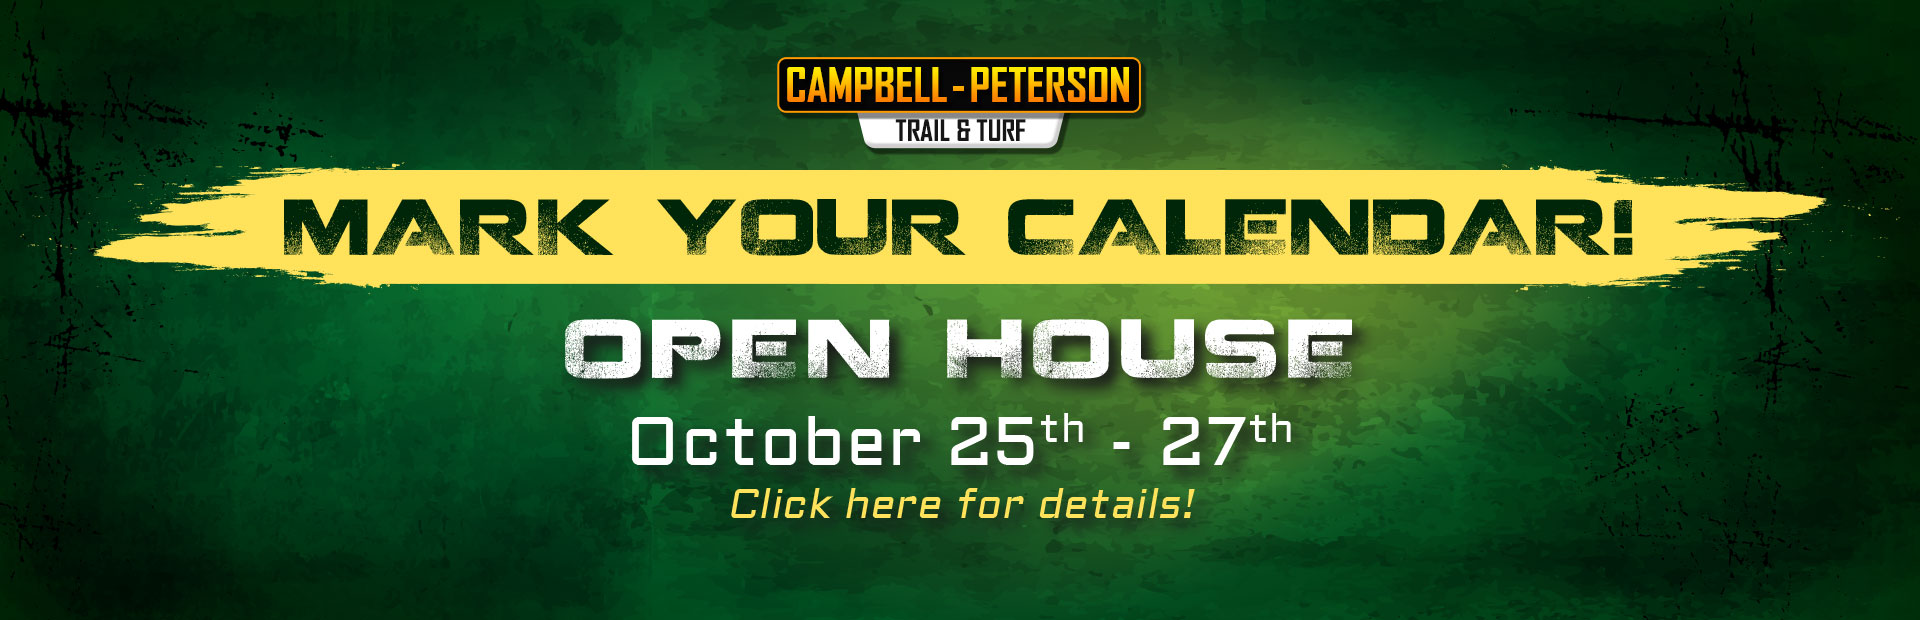 Join us for our Open House October 25th through 27th! Click here for details!